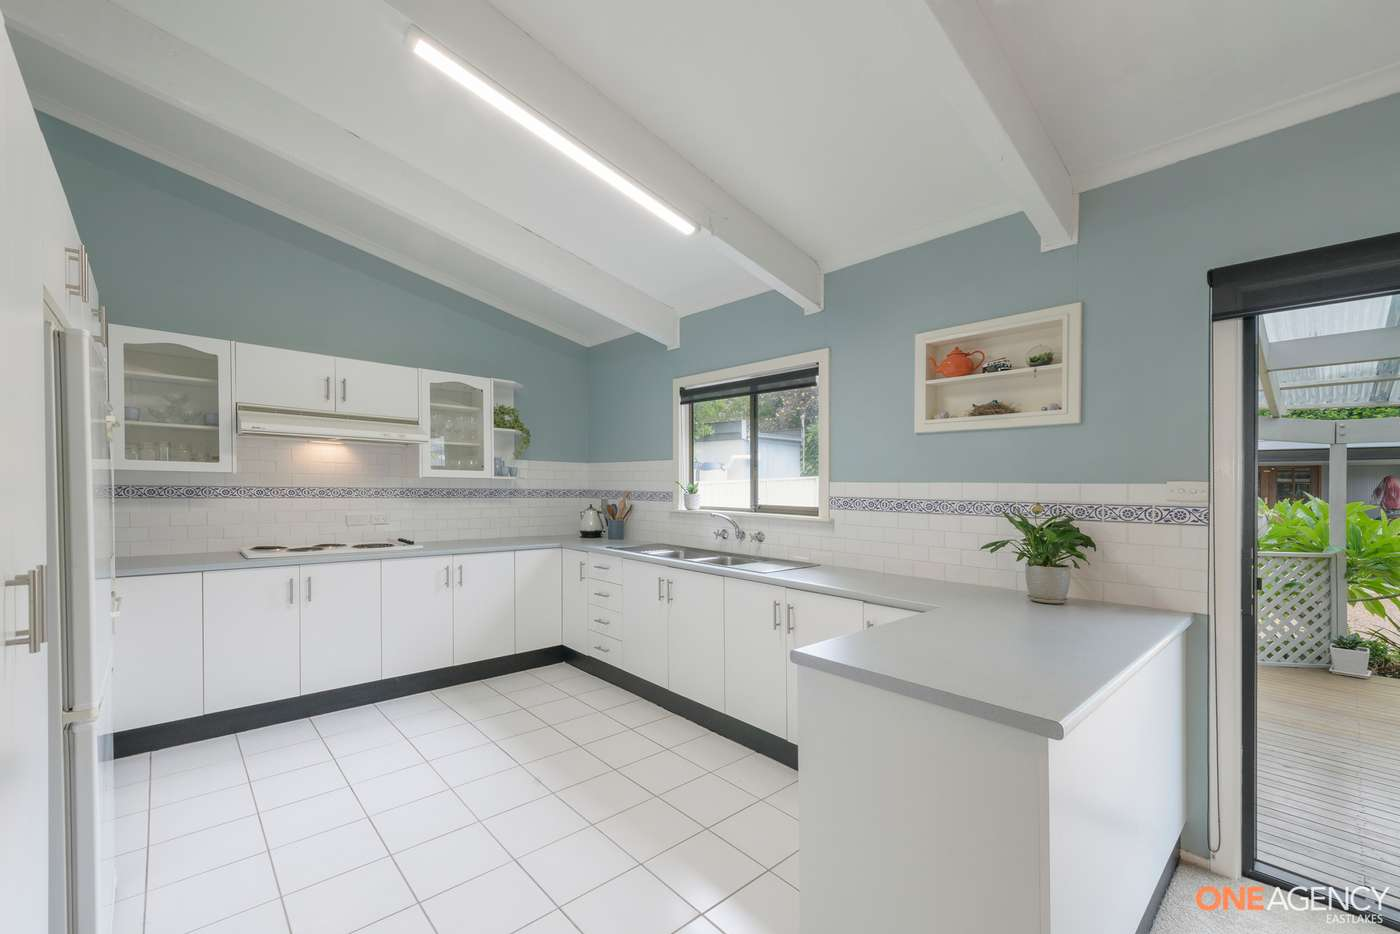 Seventh view of Homely house listing, 44 Northcote Avenue, Swansea Heads NSW 2281